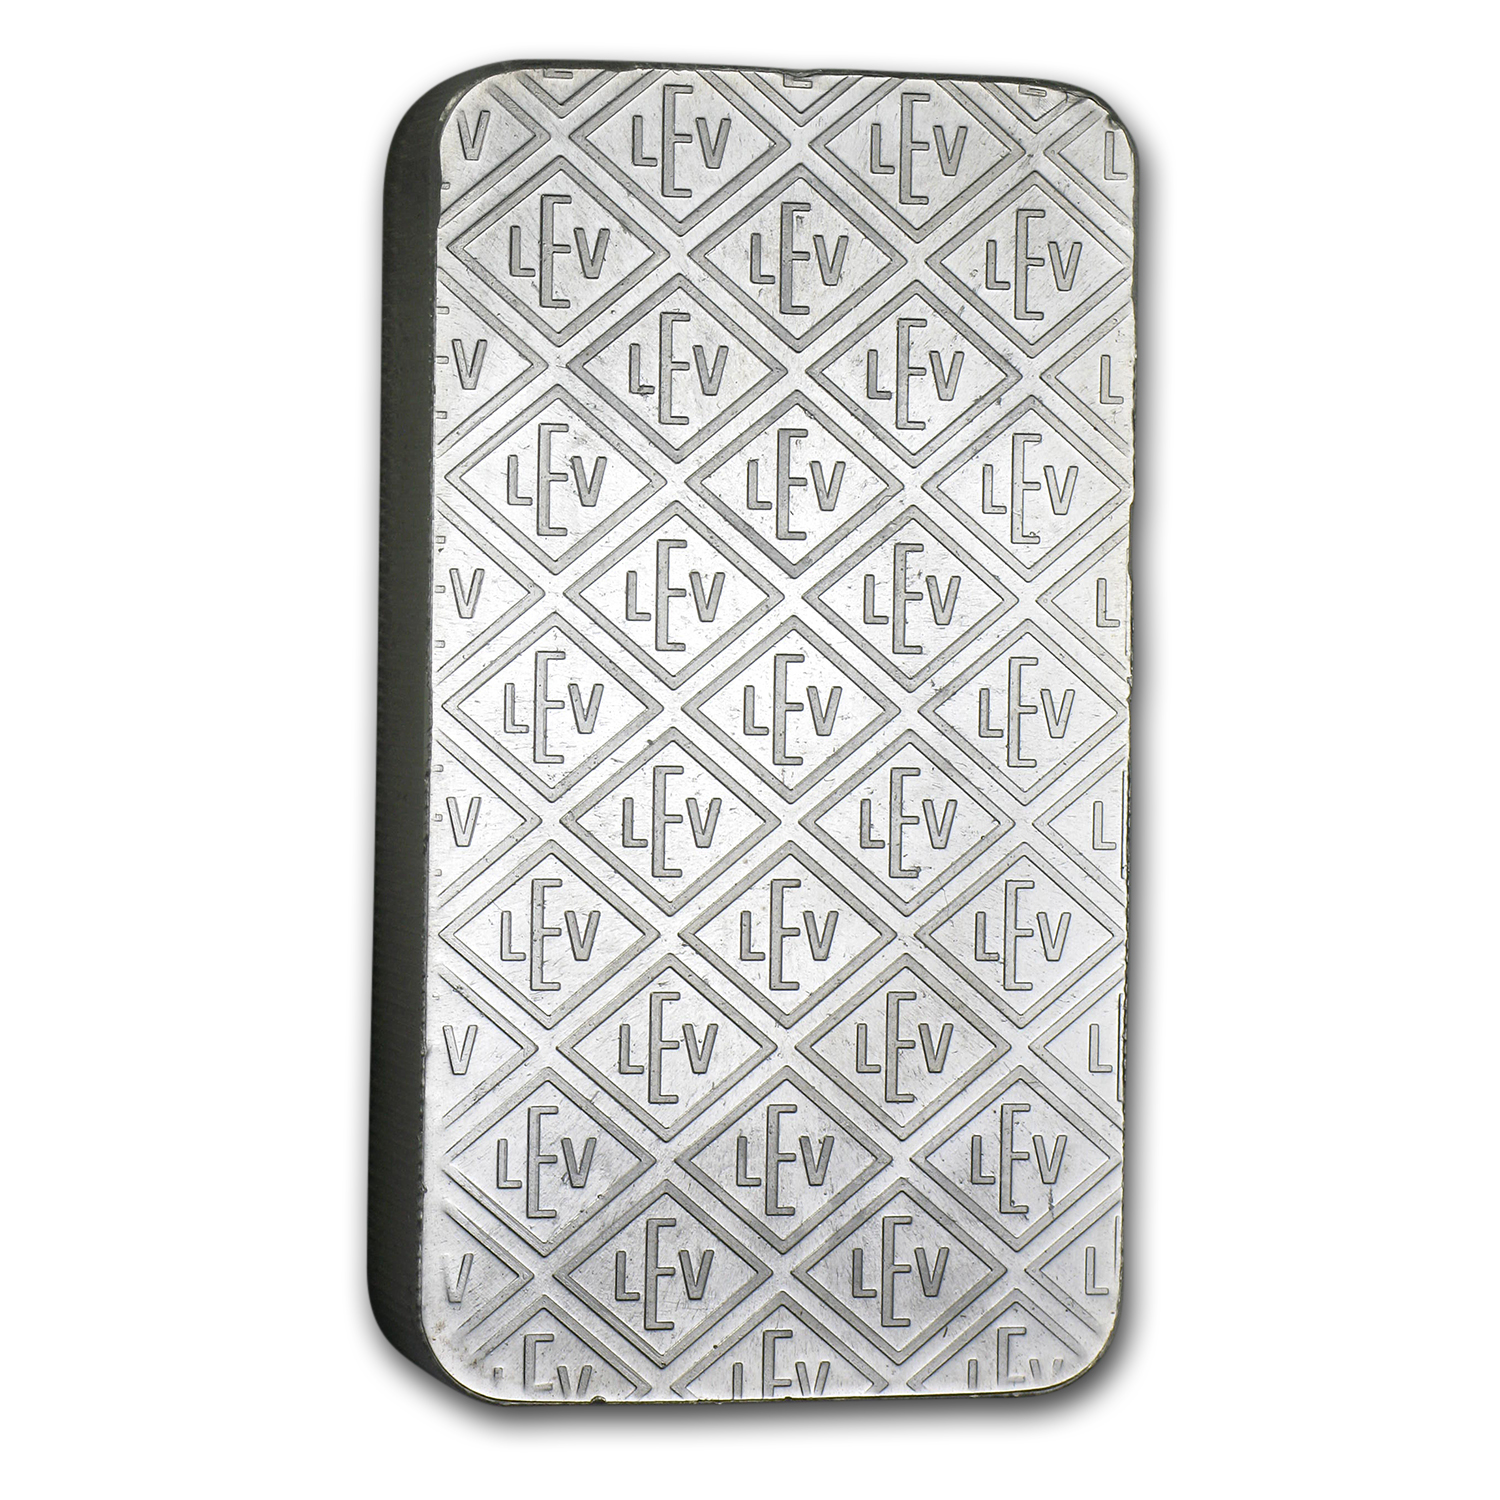 10 oz Silver Bar - Geiger (Security Line Series, Scruffy)